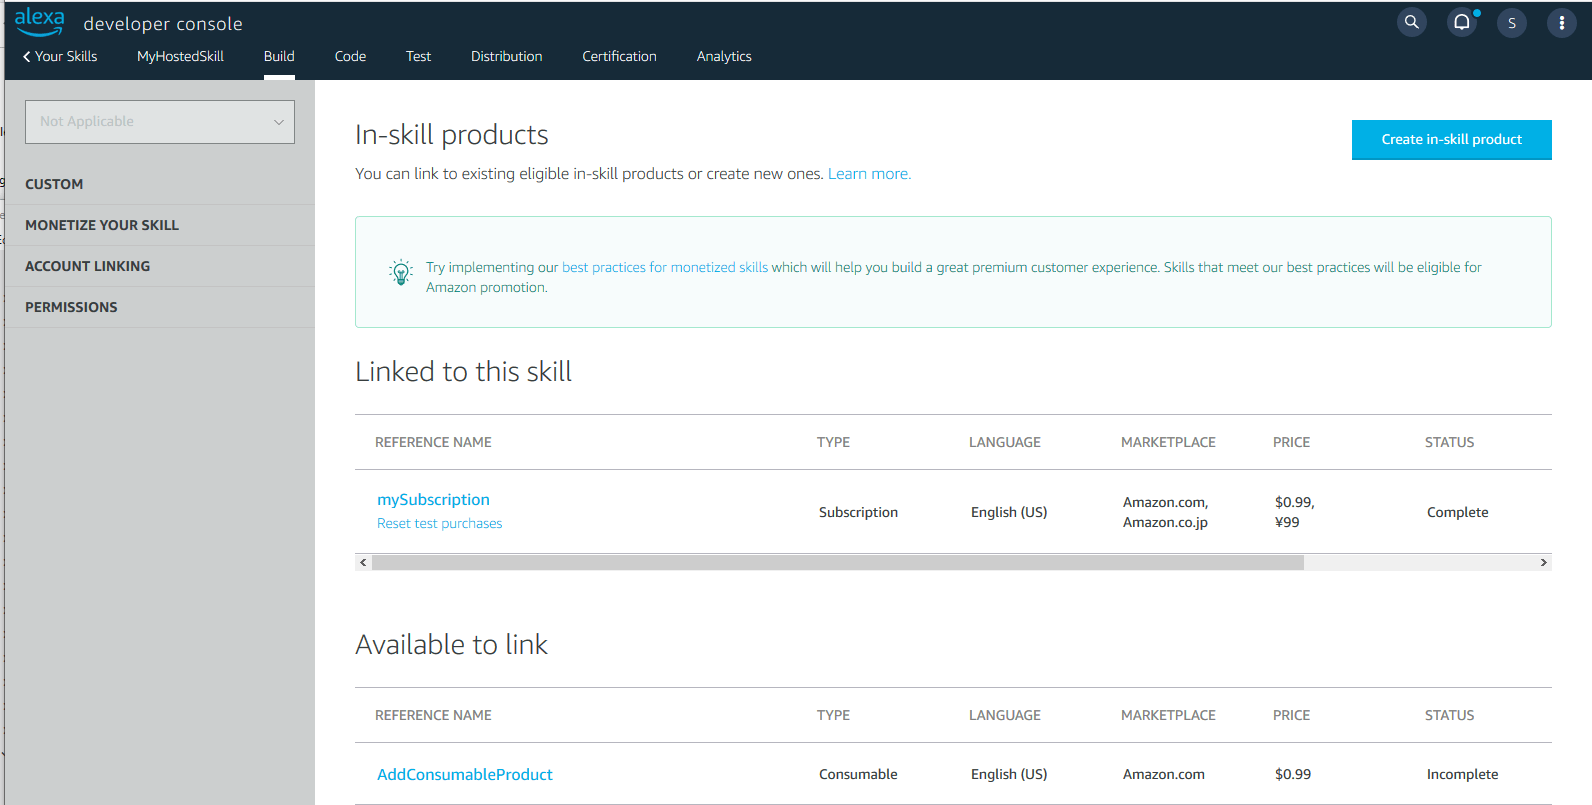 The developer console in-skill products page showing products linked to a skill in the development stage.